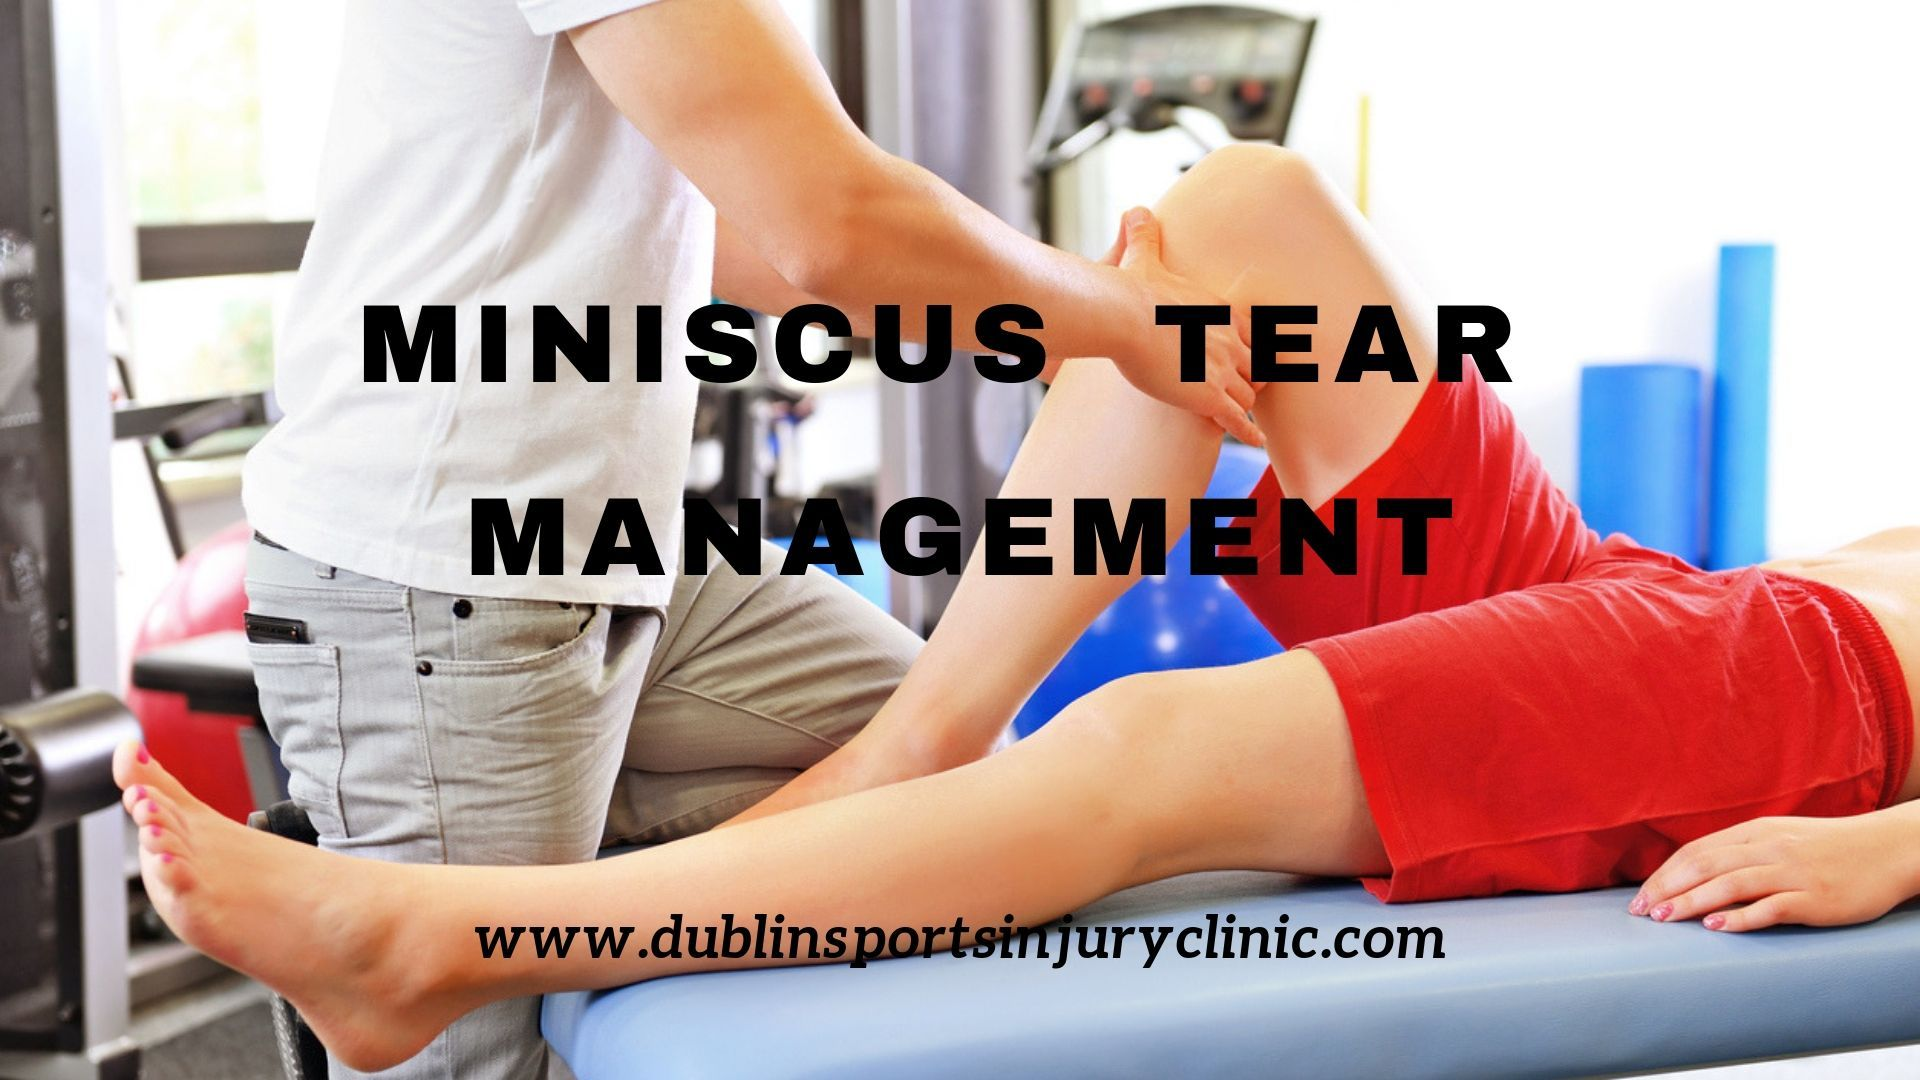 Meniscus Tear Management Meniscus tear, Knee injury